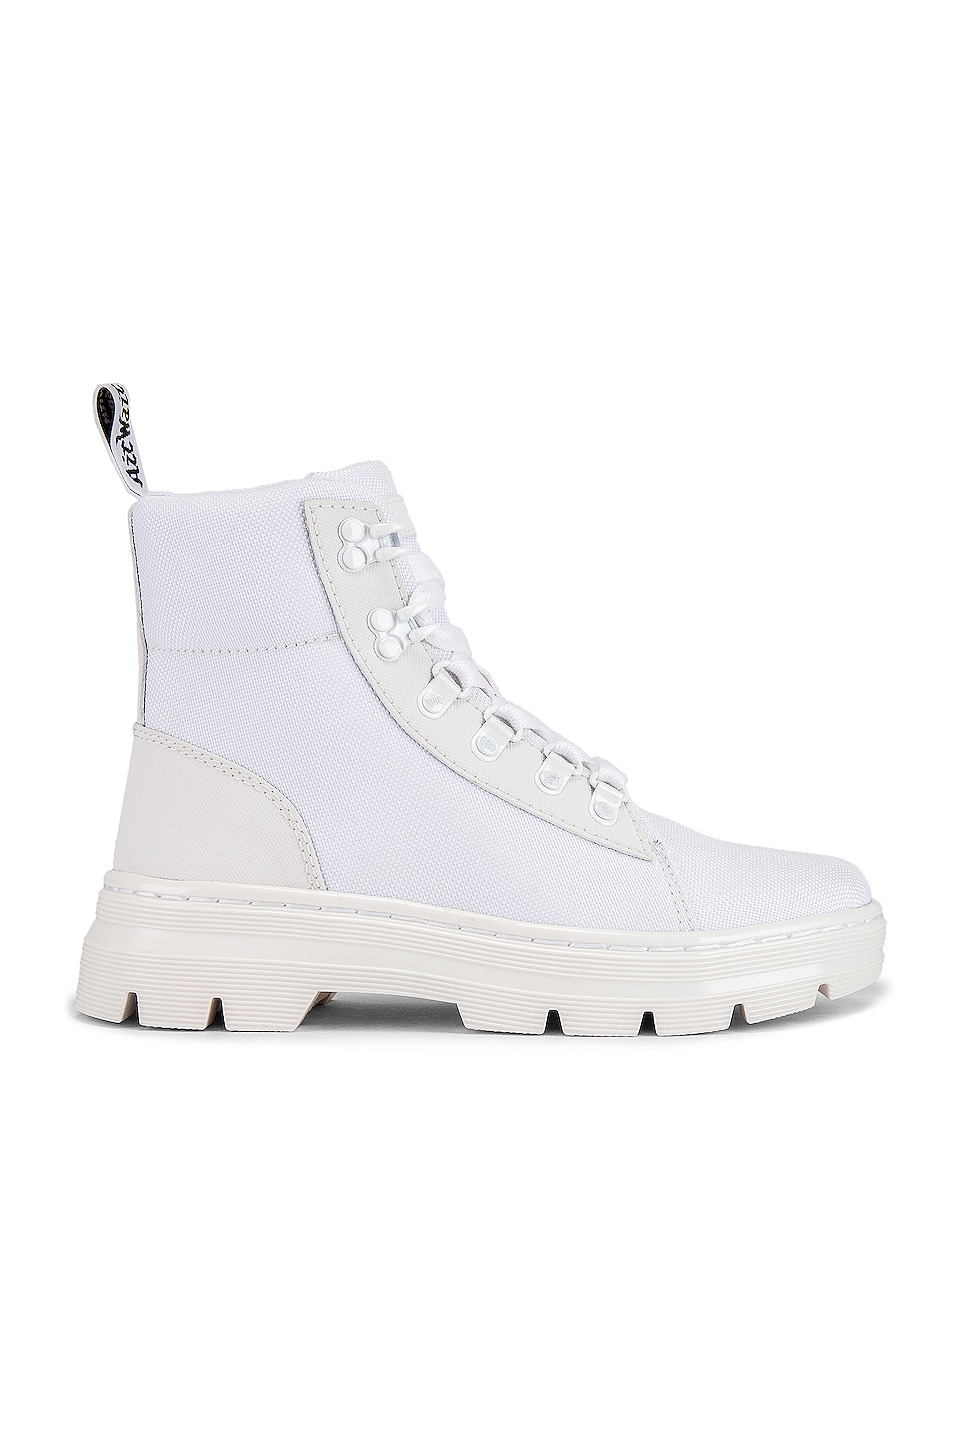 Dr. Martens Combs W Boot in White